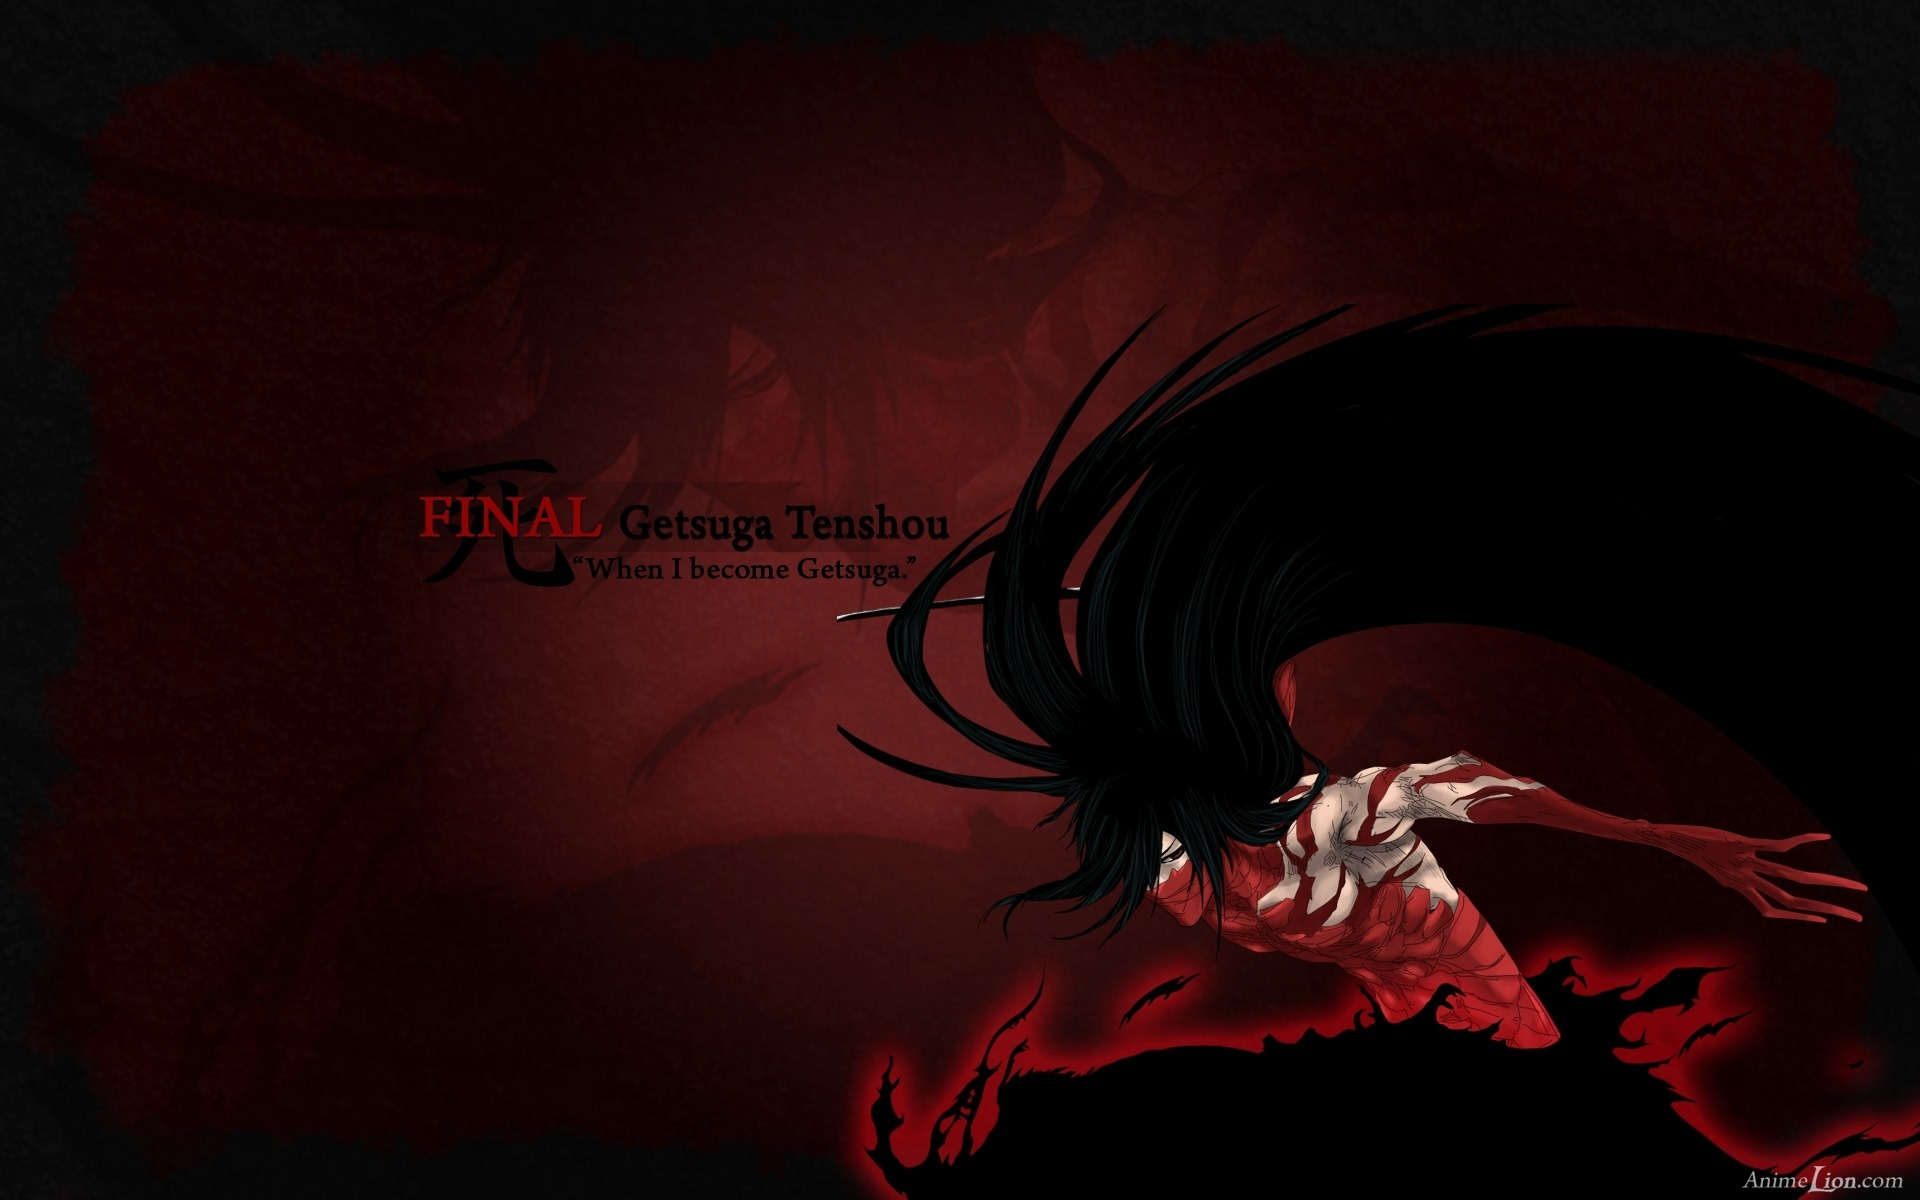 Anime - Bleach  - Ichigo - Final Getsuga Tenshou Wallpaper